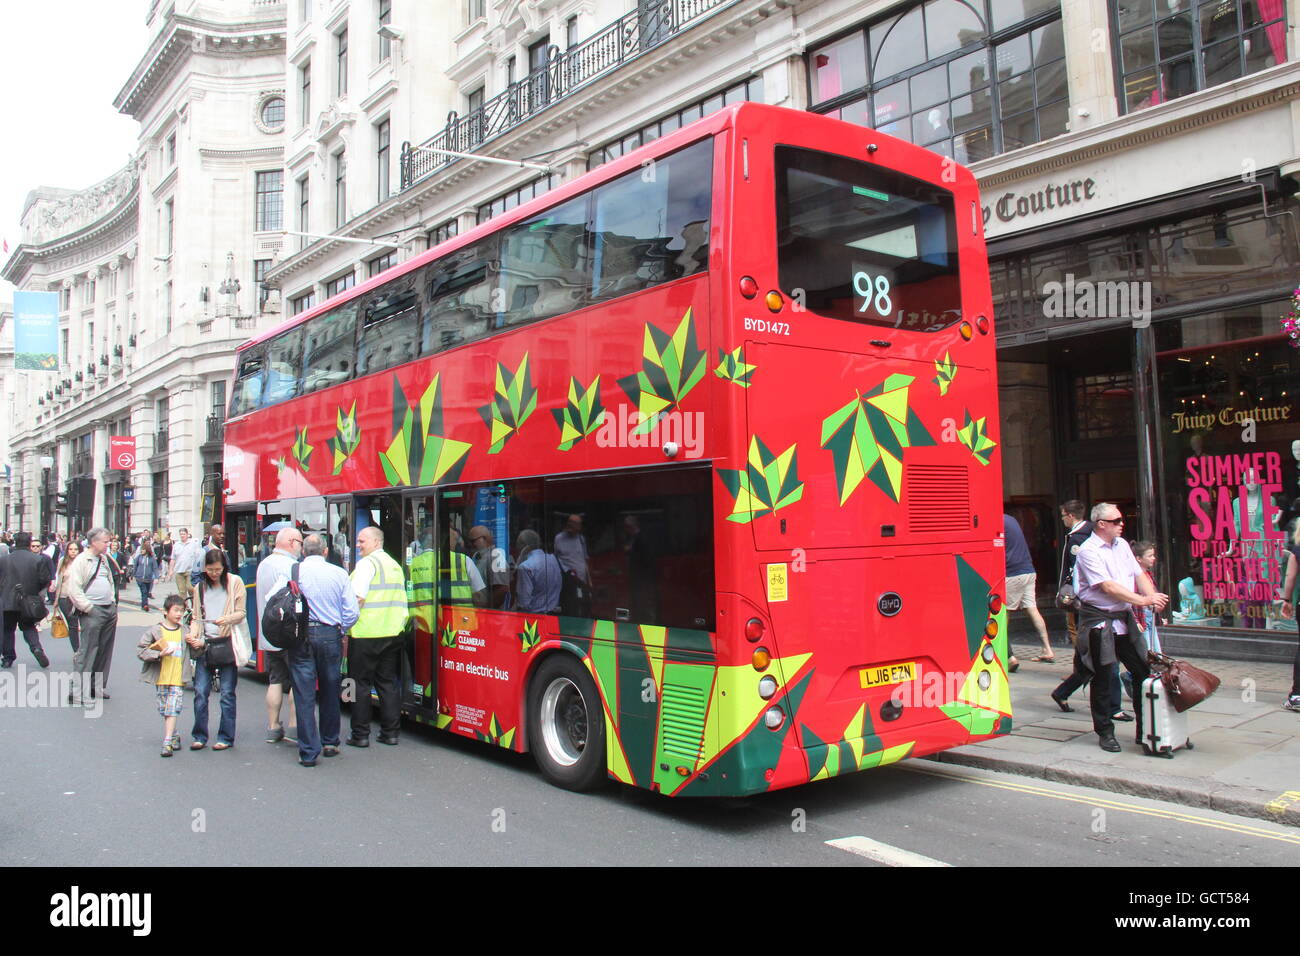 REAR VIEW OF THE FRONT OF A BYD ELECTRIC DOUBLE DECK BUS FOR TFL LONDON METROLINE ROUTE 98 - Stock Image